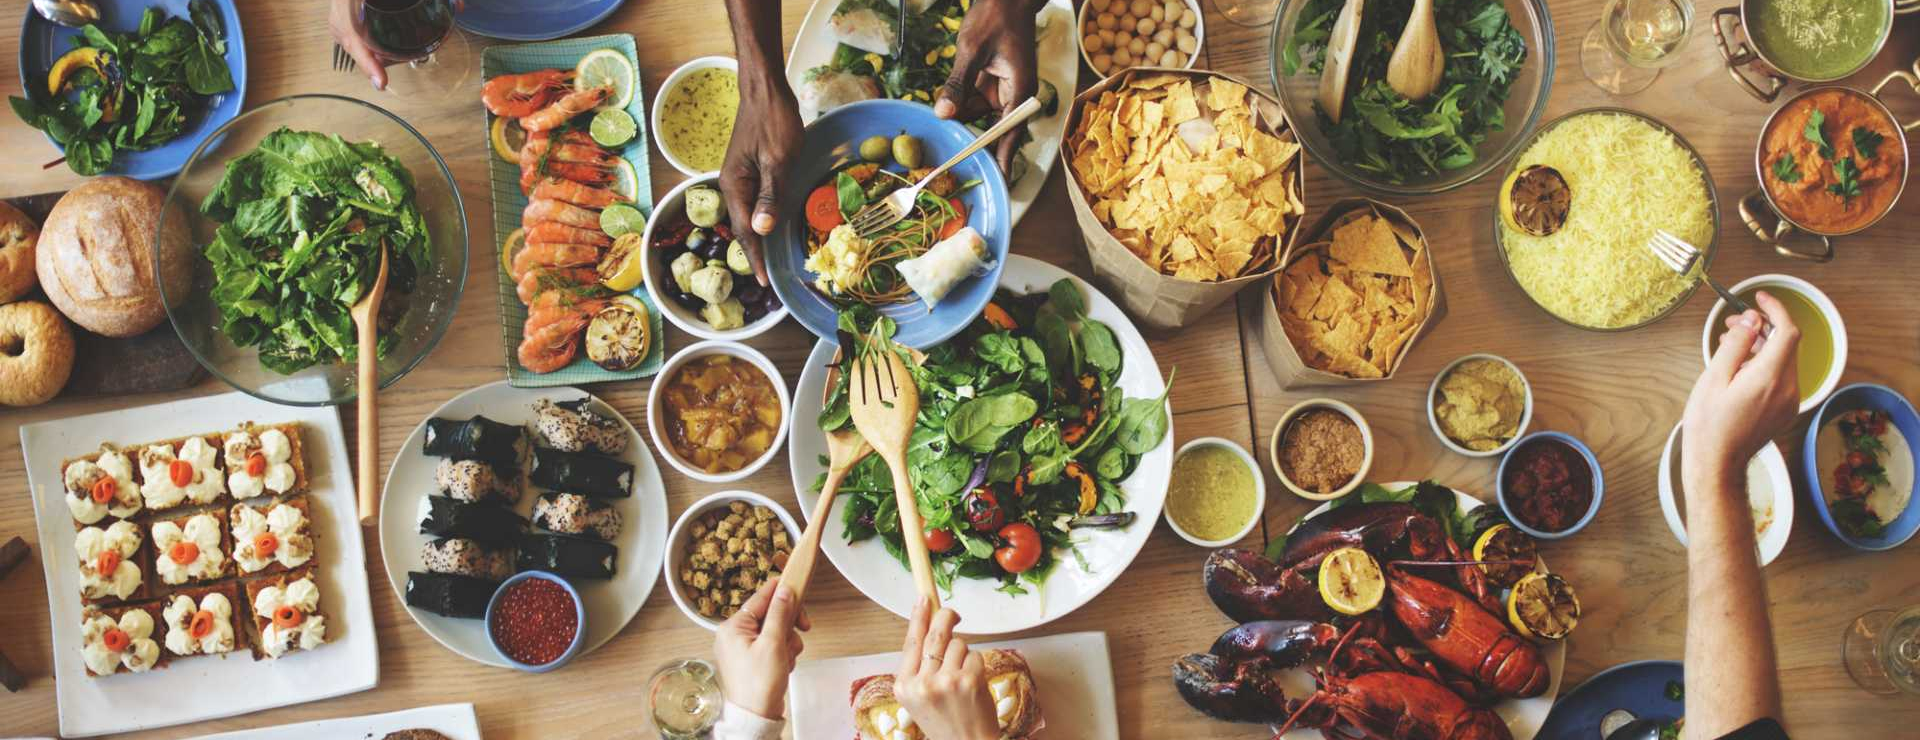 CROP - Food and Drink Table Meal - image courtesy of Depositphotos.